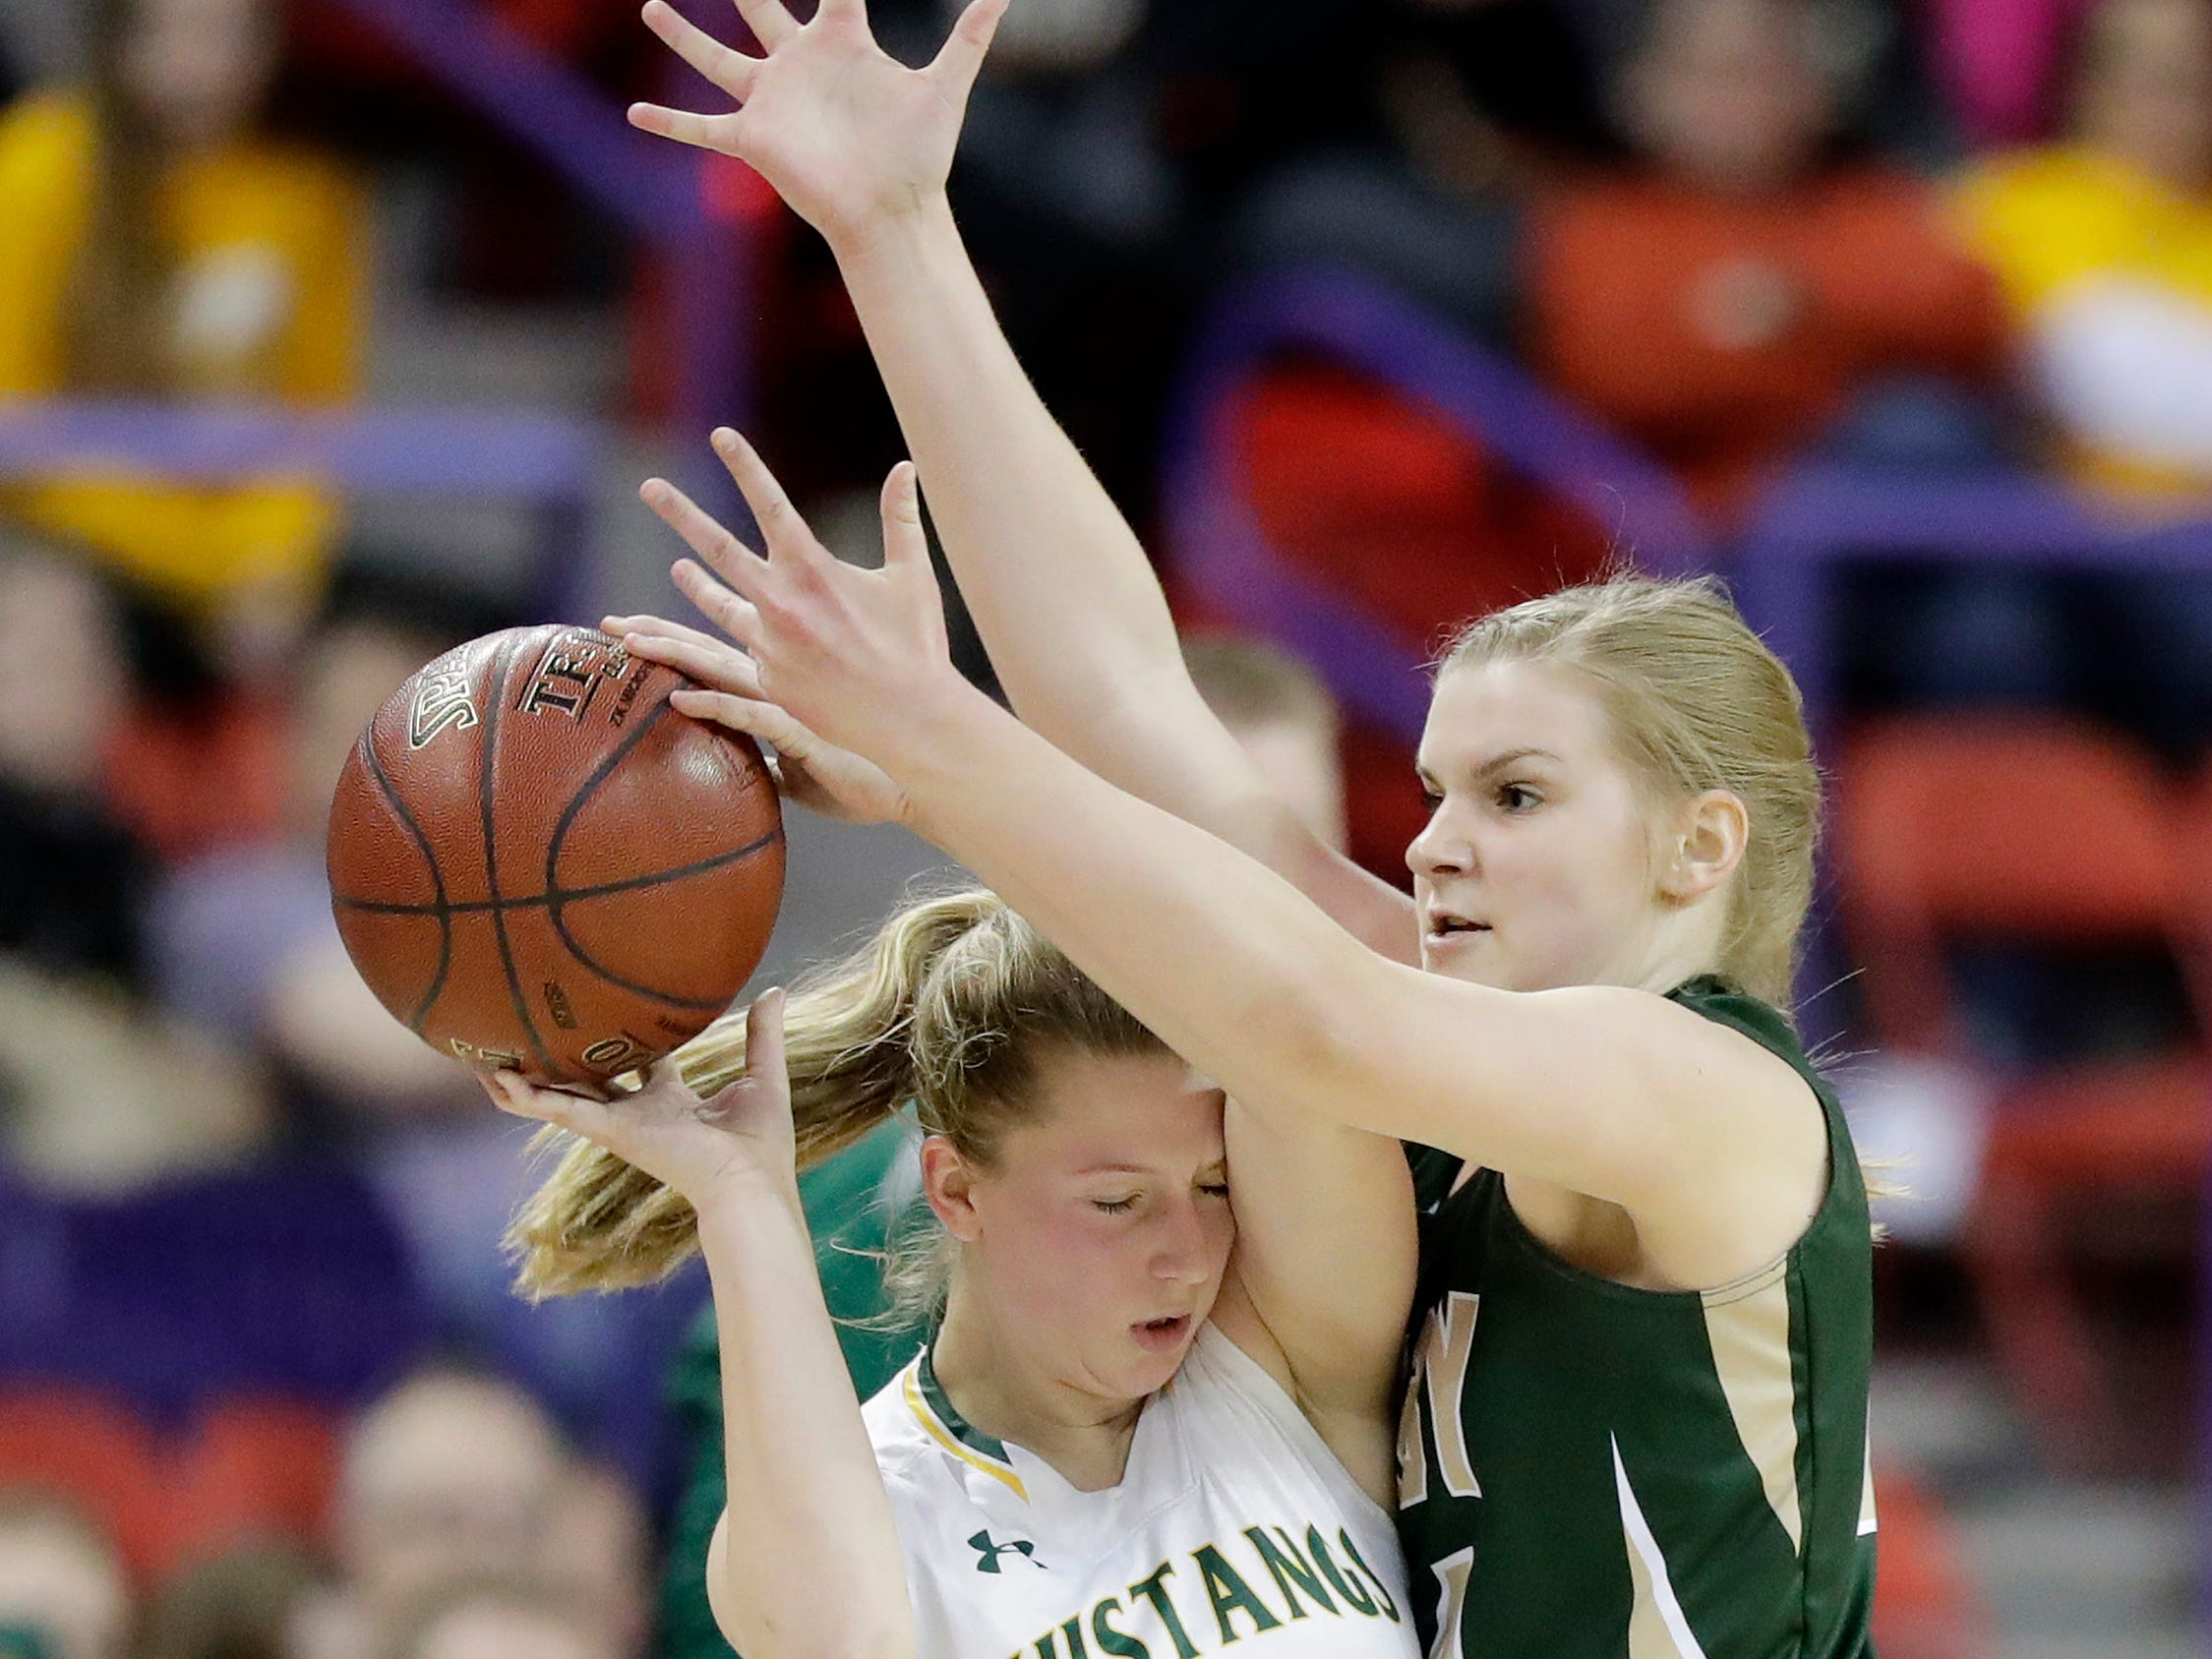 Colby's Lexi Underwood (24) pressures Melrose-Mindoro's Teagan Frey (3) in a Division 3 semifinal at the WIAA state girls basketball tournament at the Resch Center on Thursday, March 7, 2019, in Ashwaubenon, Wis.